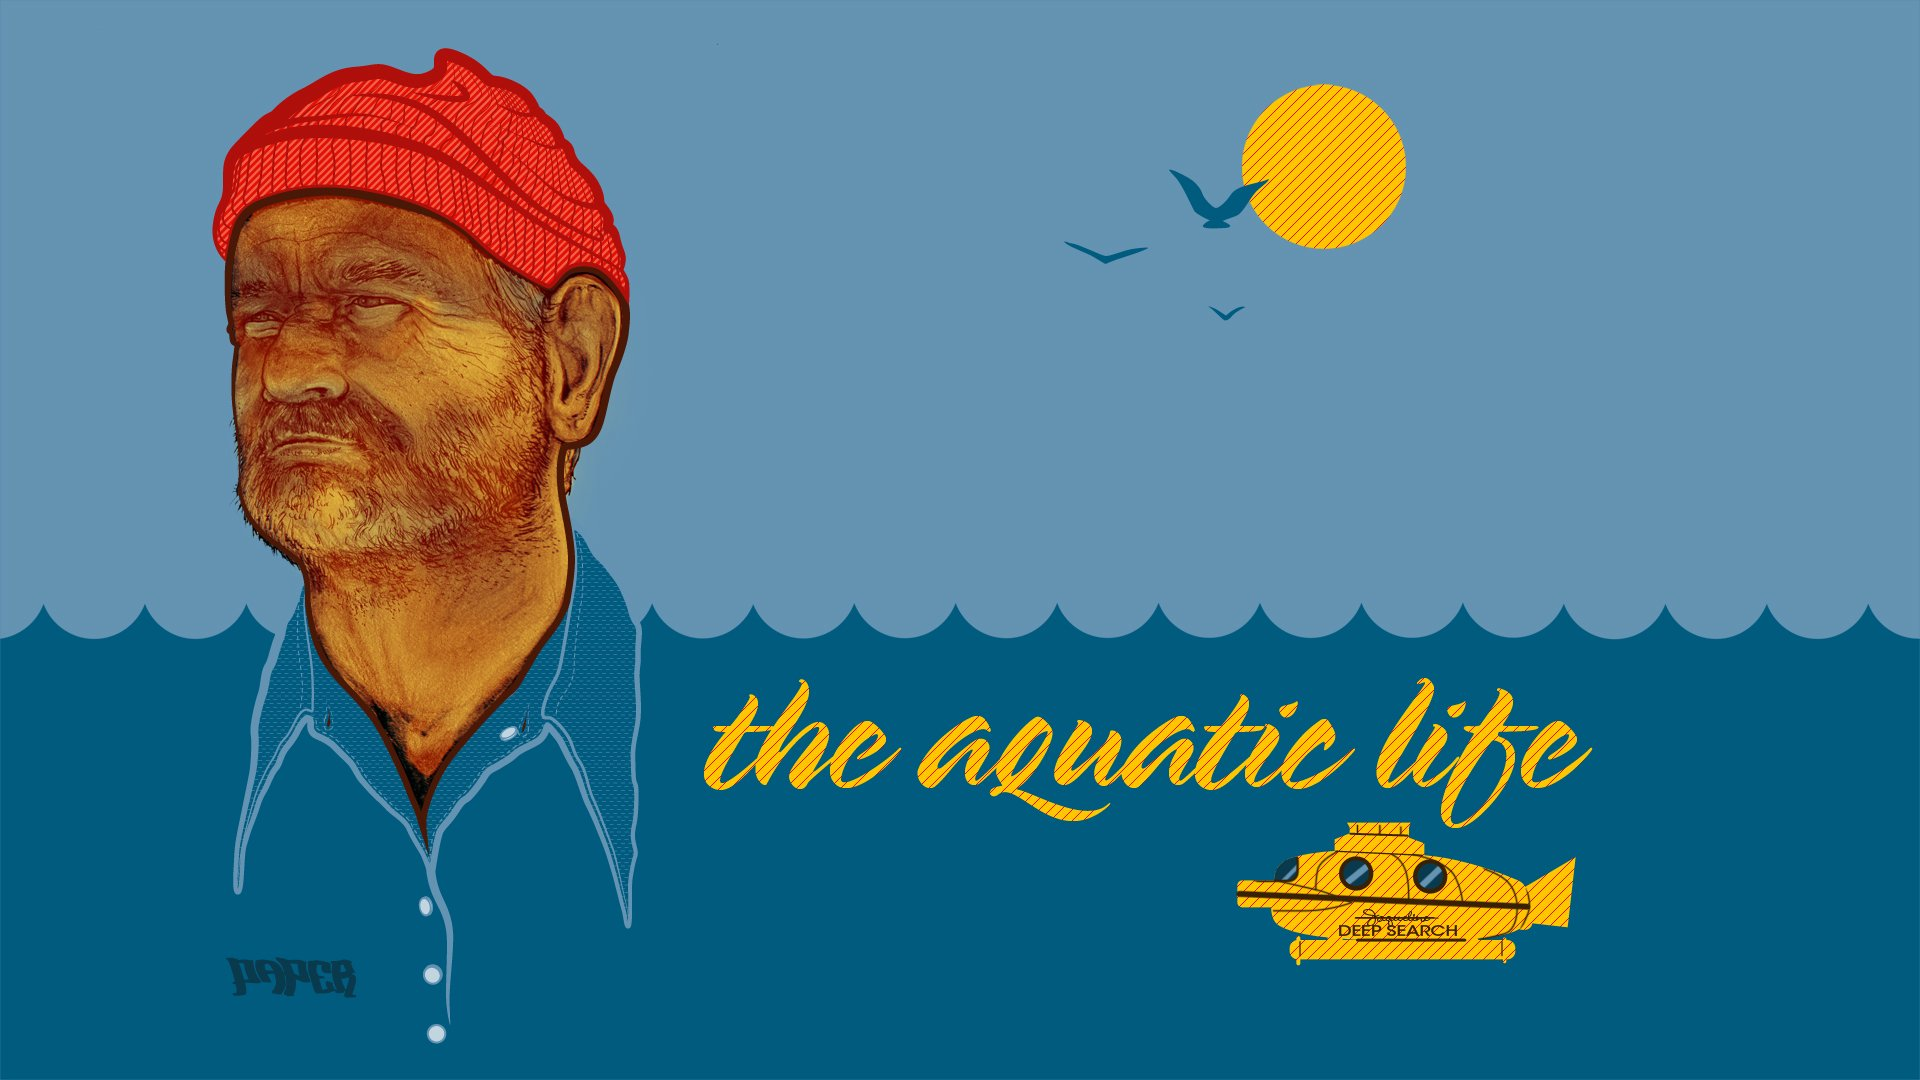 the life aquatic with steve zissou hd wallpaper background image